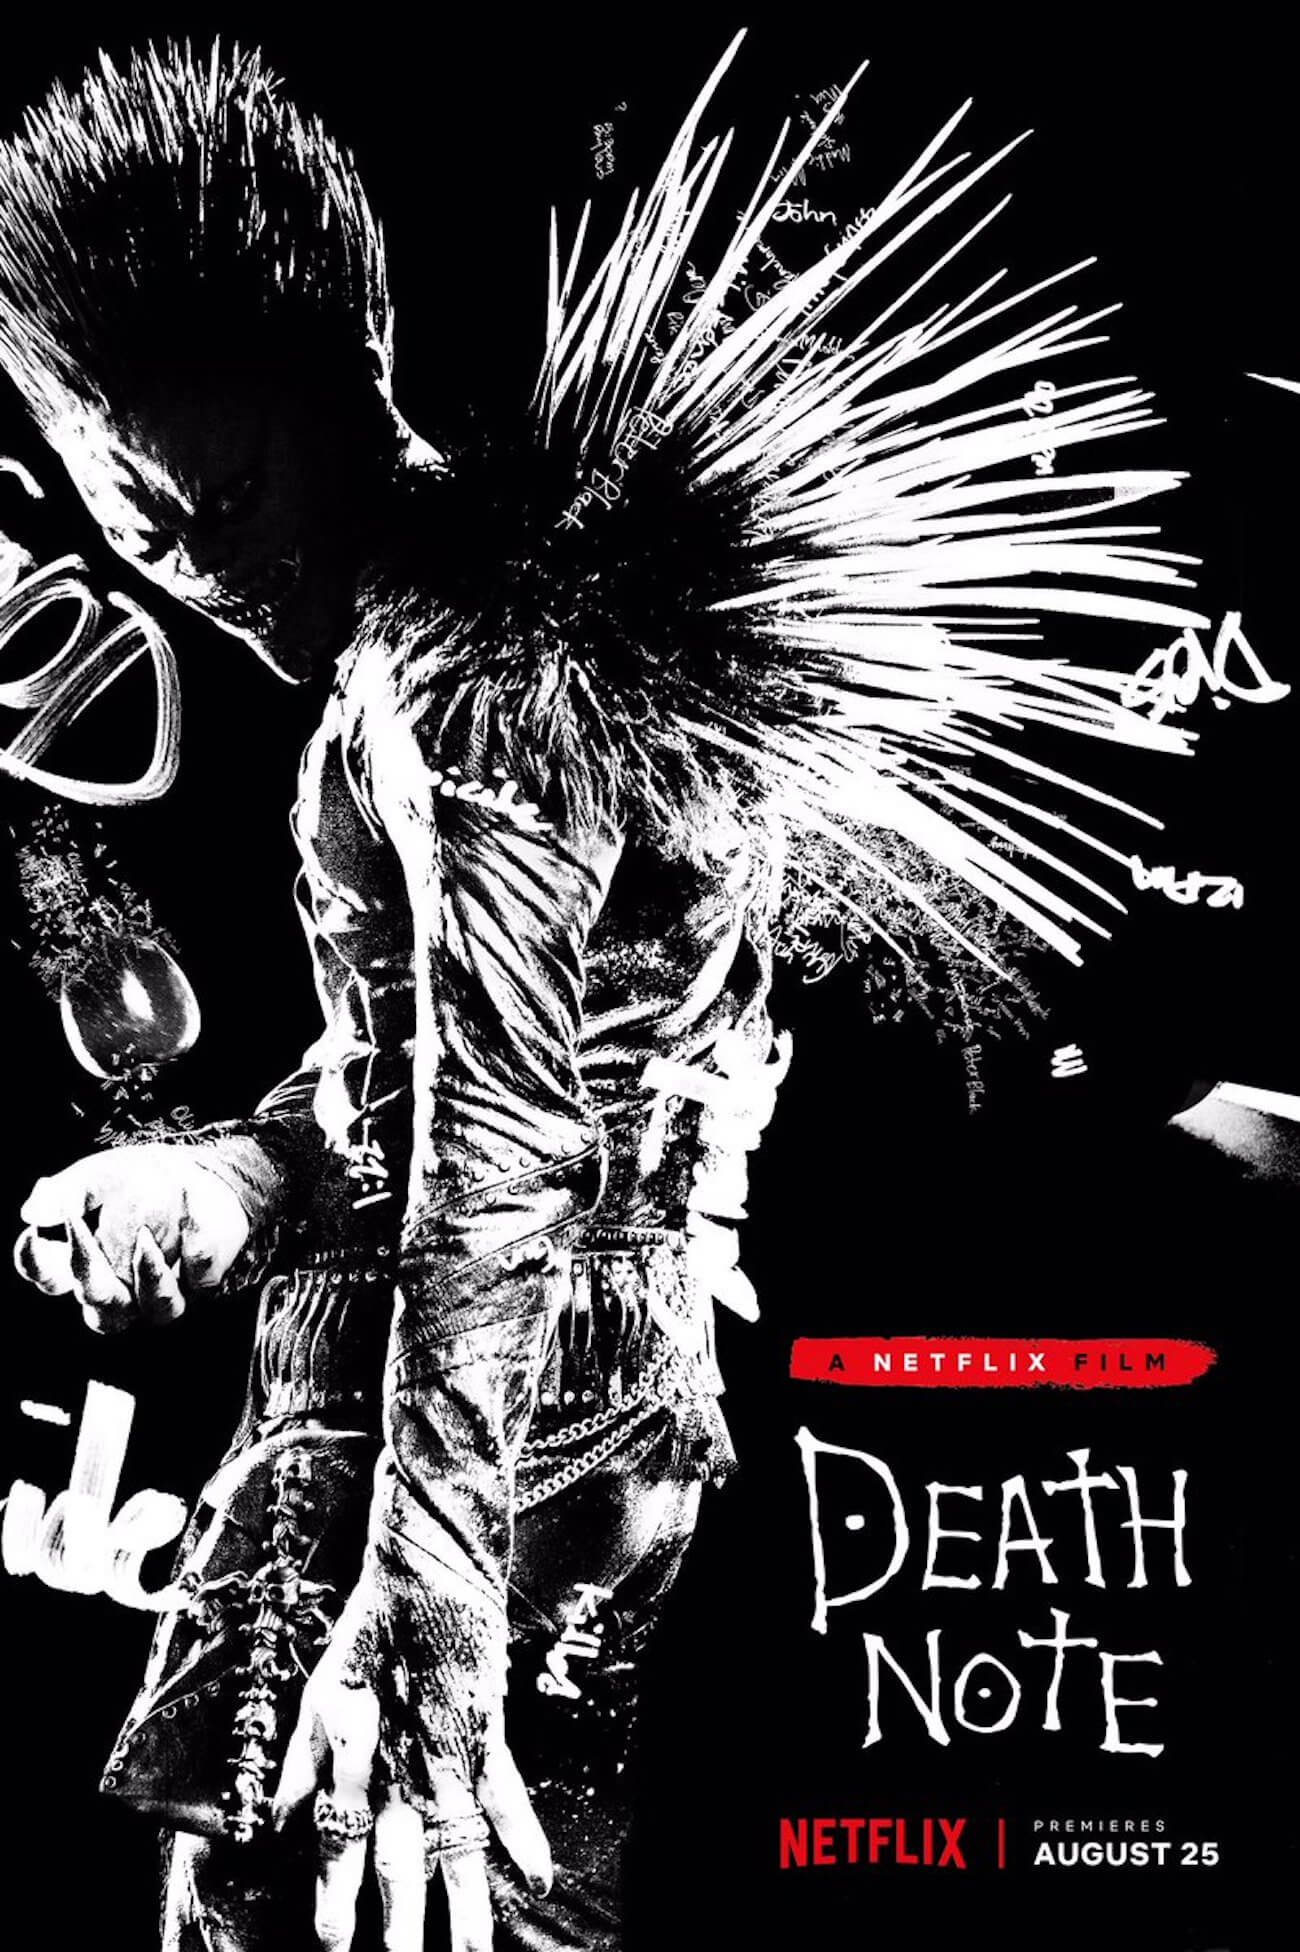 Death note ryuk poster